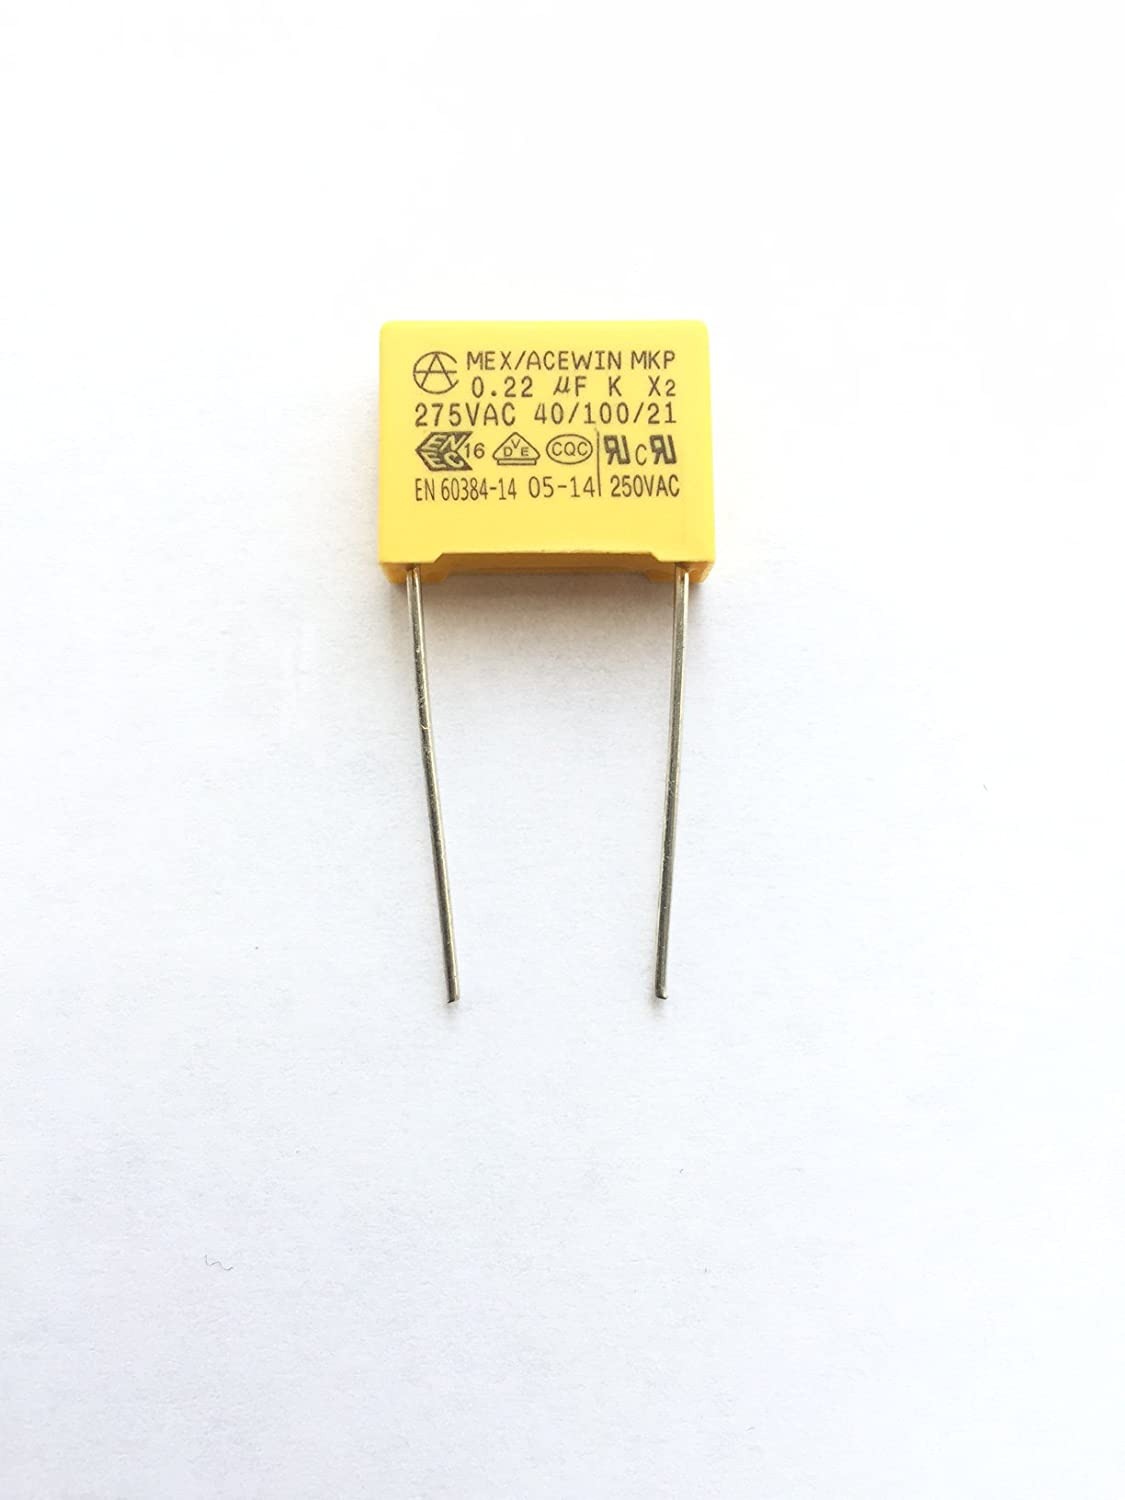 Flymo Easi Glide 330 Capacitor